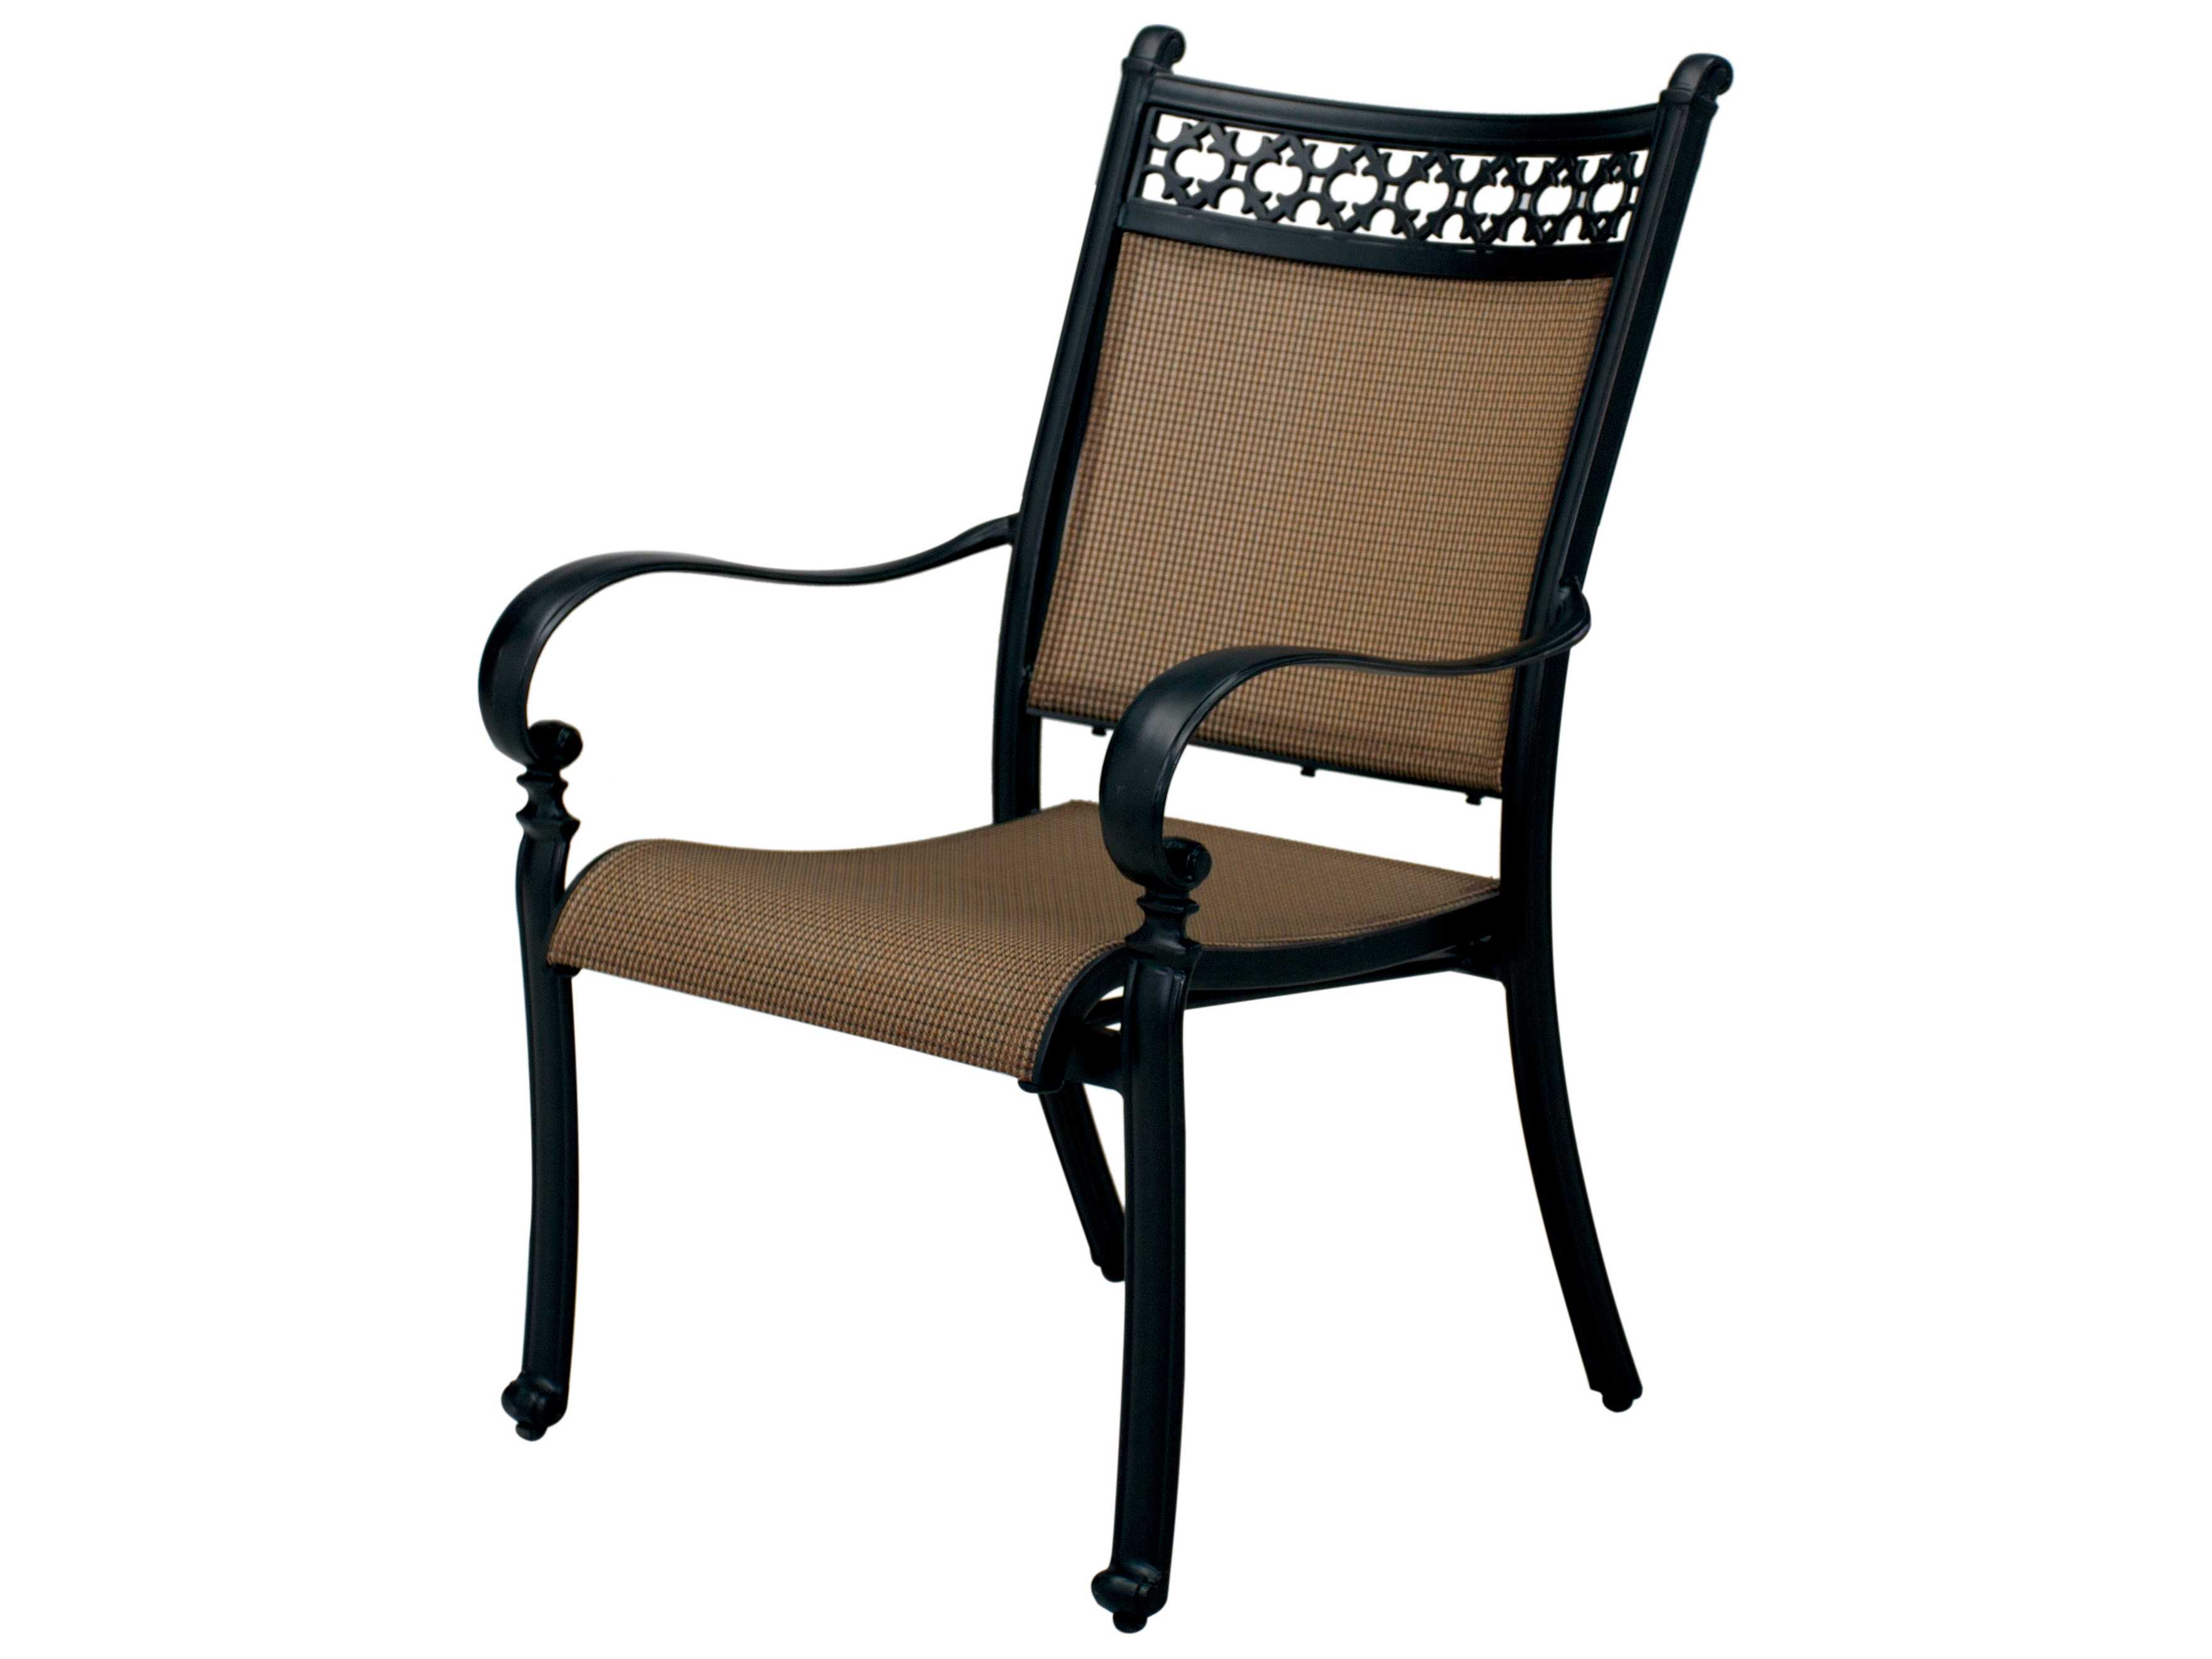 Sling Chairs Darlee Outdoor Living Standard Mountain View Cast Aluminum